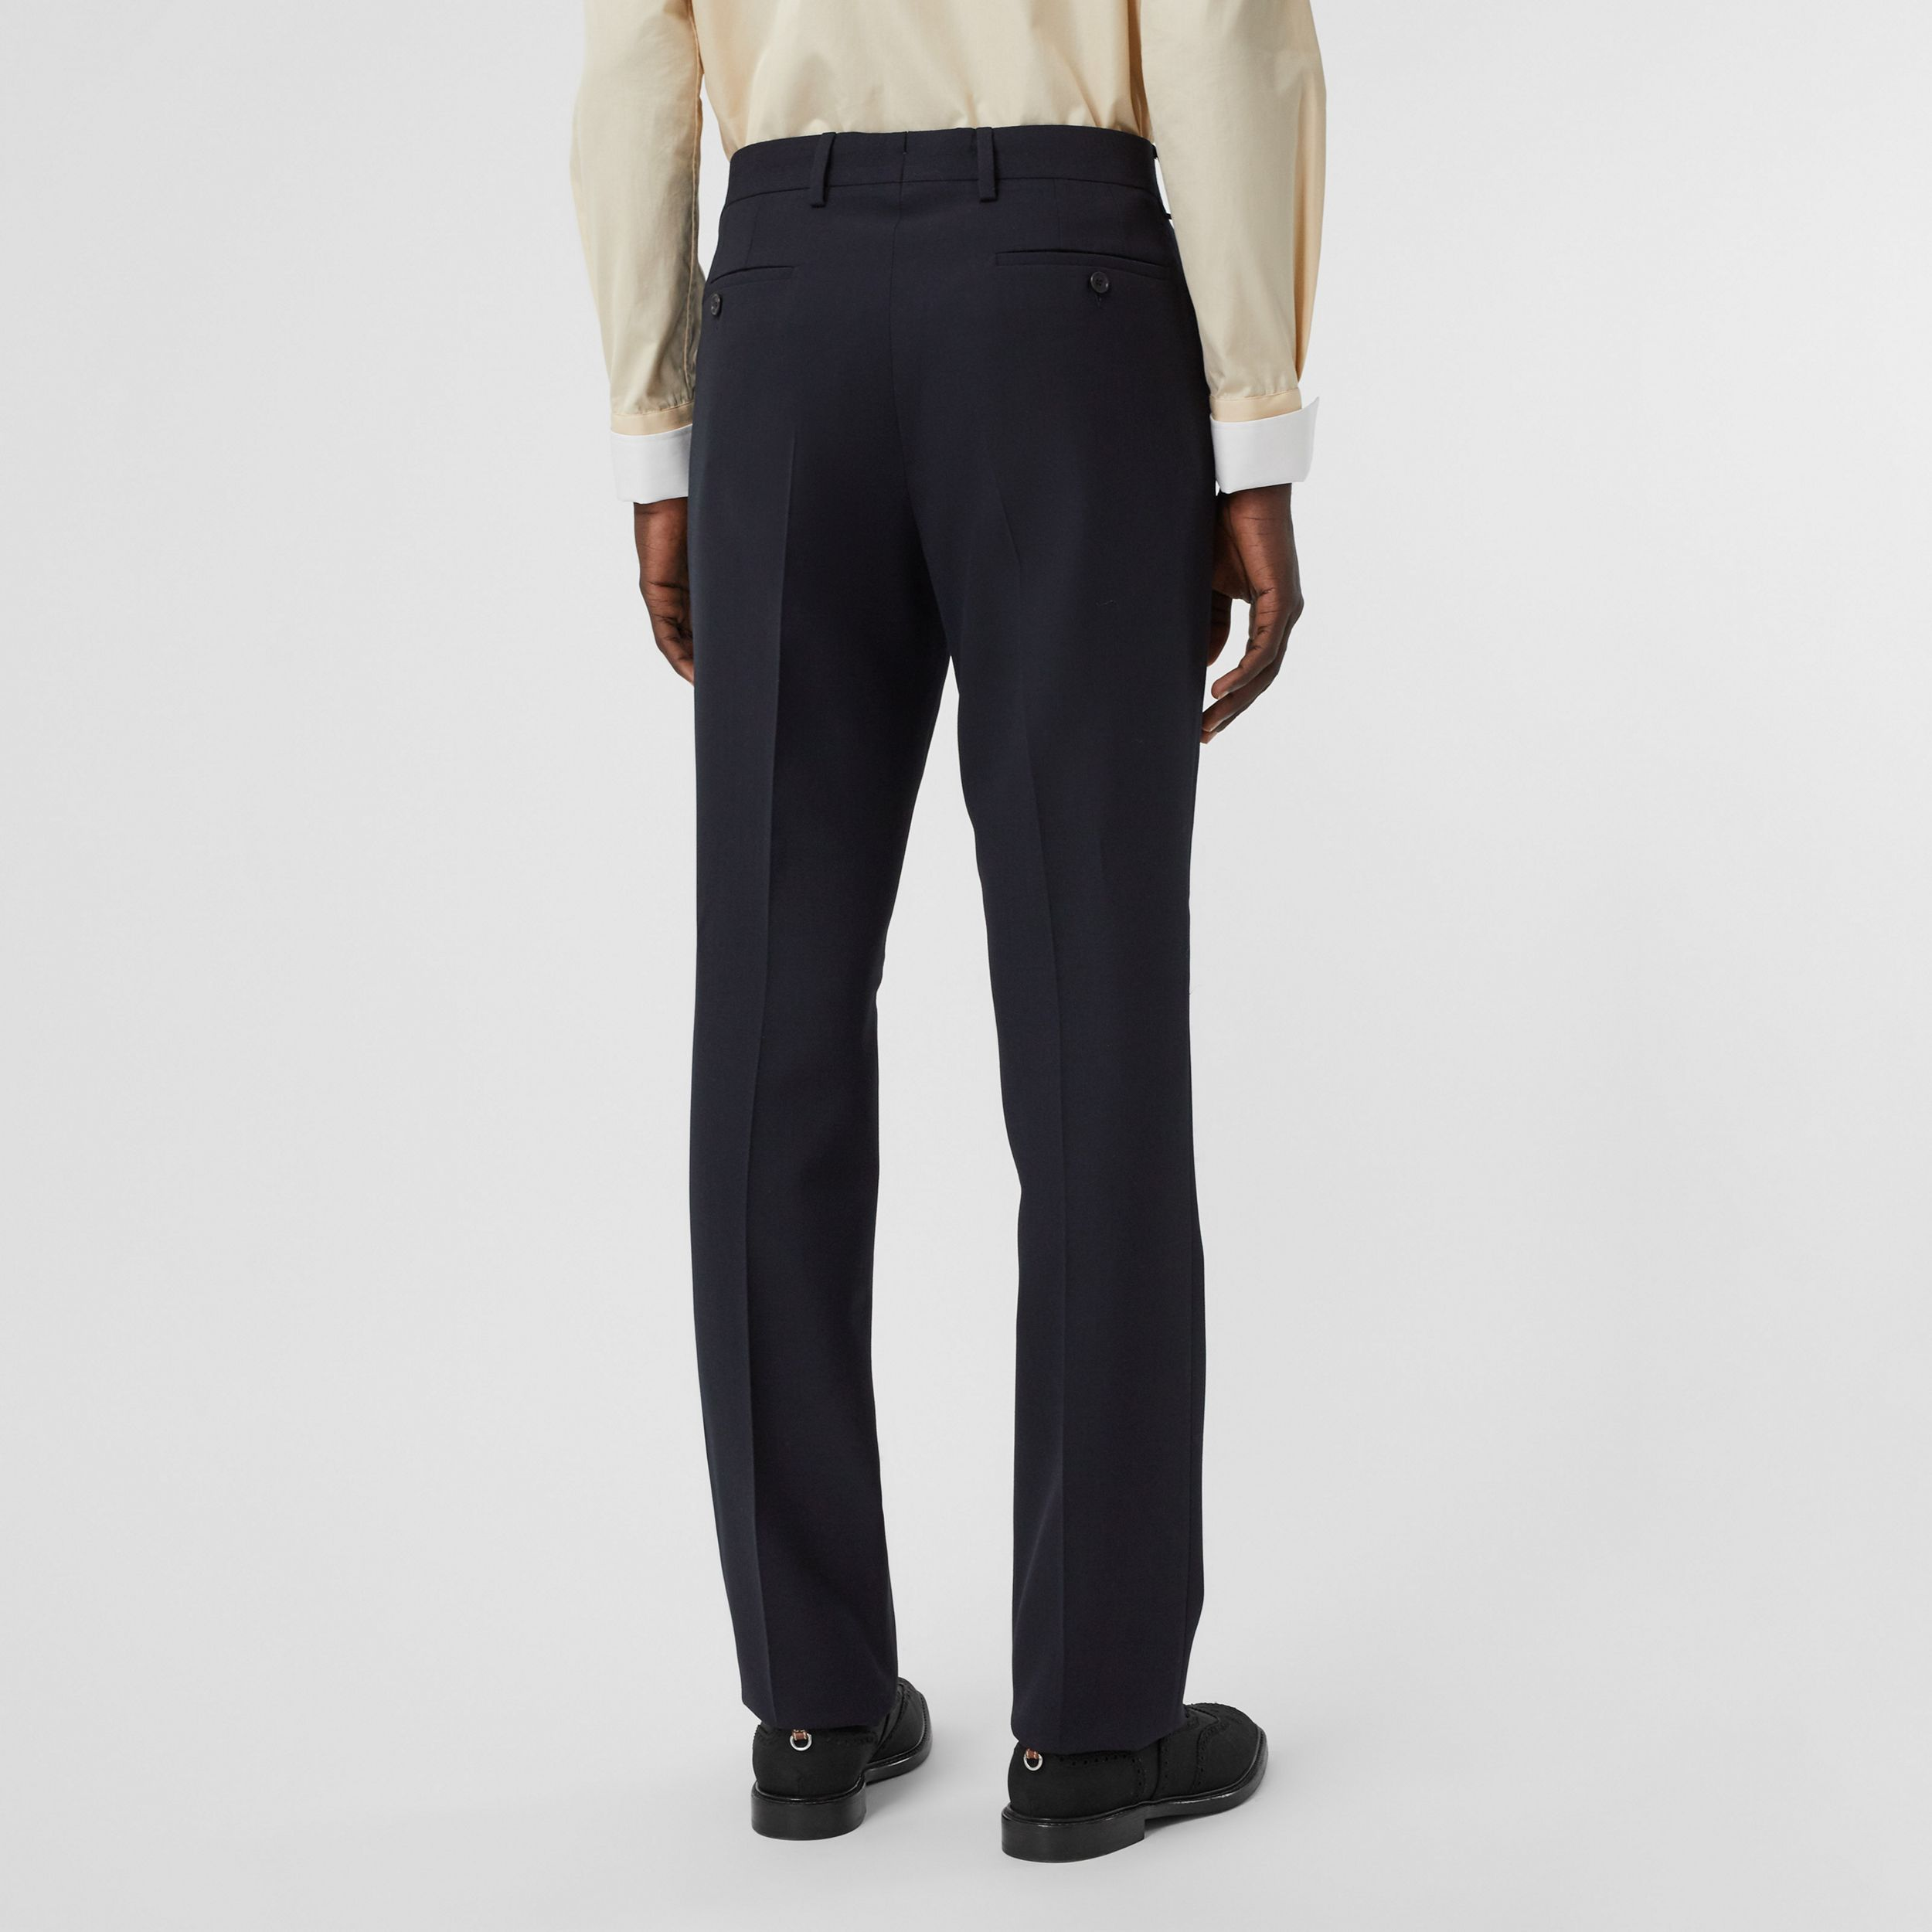 Classic Fit Double-faced Wool Crepe Tailored Trousers in Navy - Men | Burberry - 3